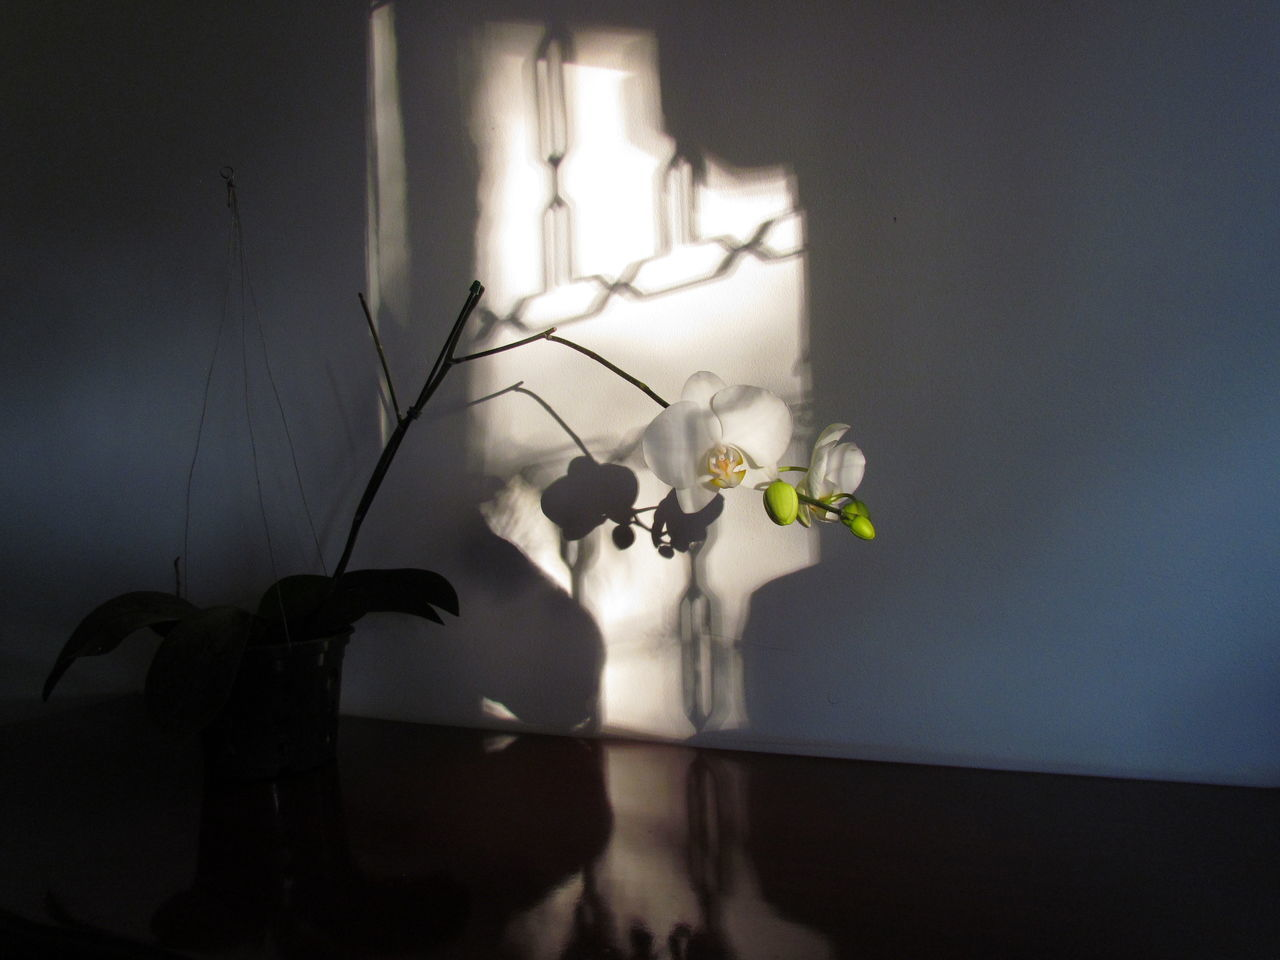 Indoors  Flower Shadow No People Table Fragility Nature Close-up Day EyeEm Indoors  Kikosene EyeEm Gallery Nature_collection Orchid Petal Brazil Phalaenopsis EyeEm Gallery Orchids Photography Flower Head Outdoors Beauty In Nature Orchids Collection Nature